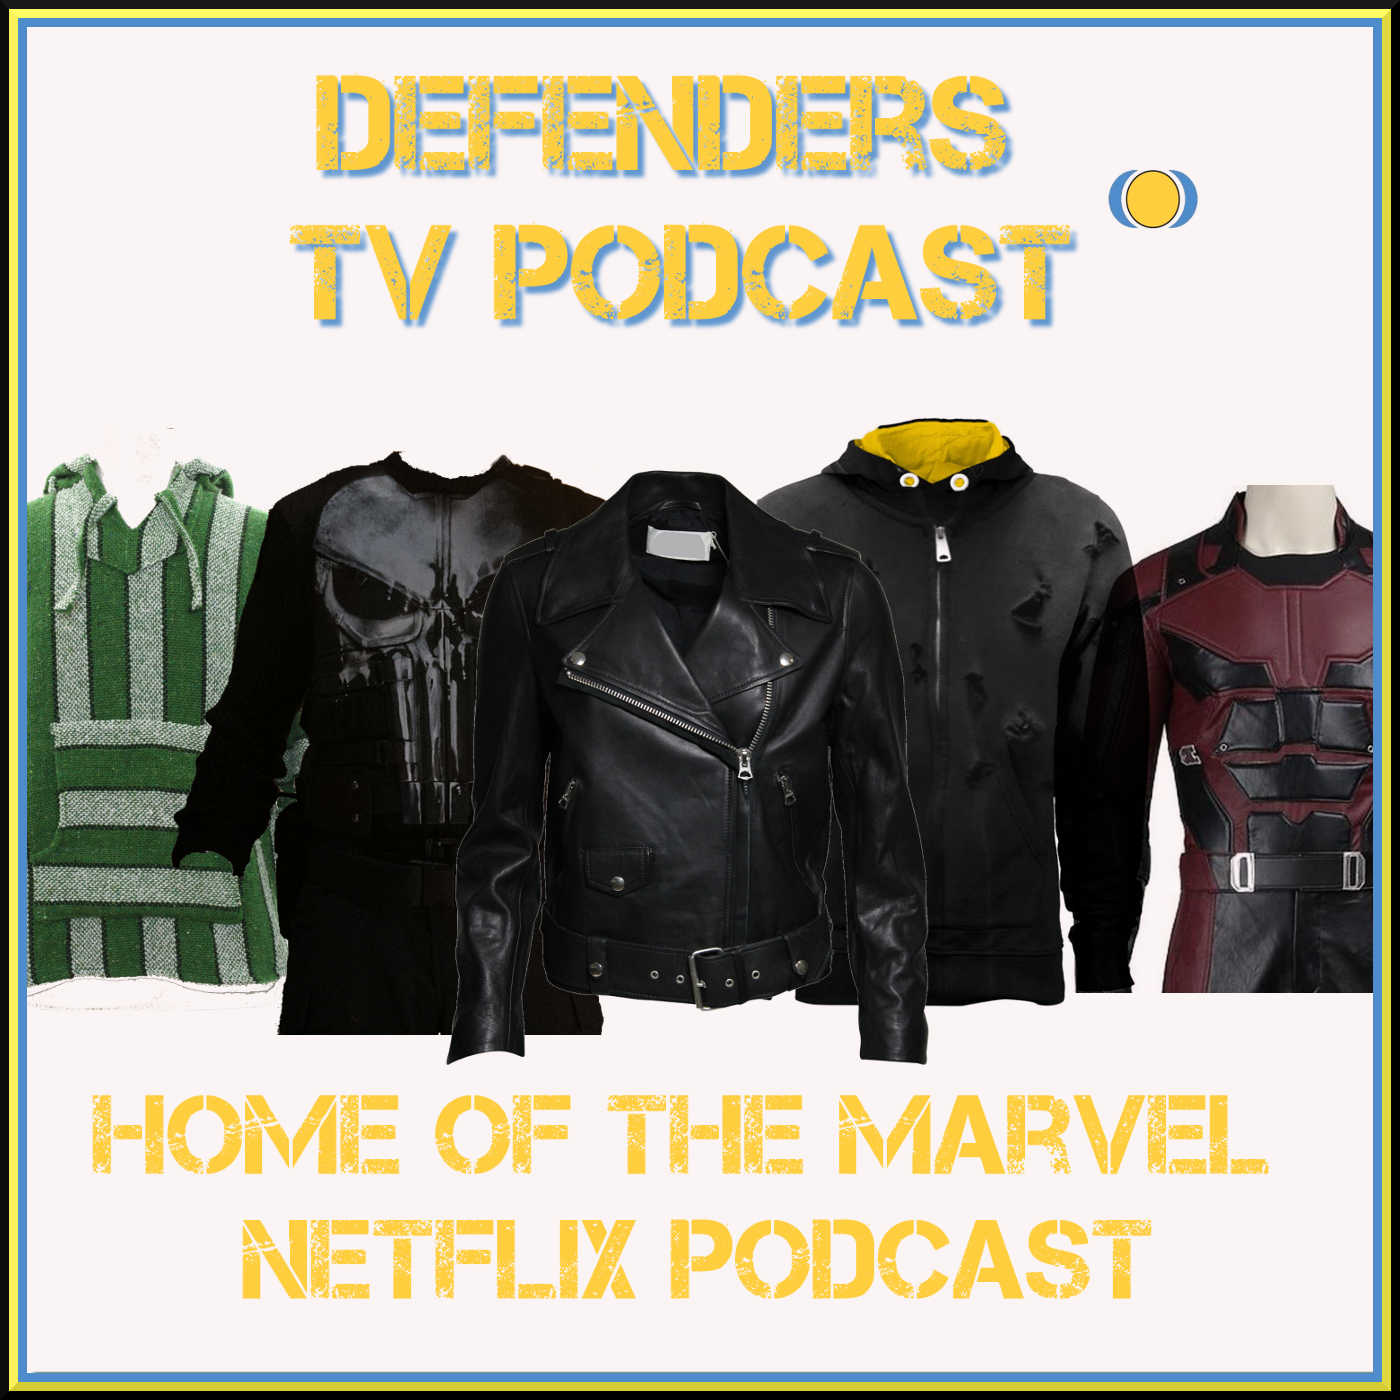 Defenders TV Podcast The home of Jessica Jones, Punisher, Daredevil, Luke Cage, Iron Fist and Doctor Strange